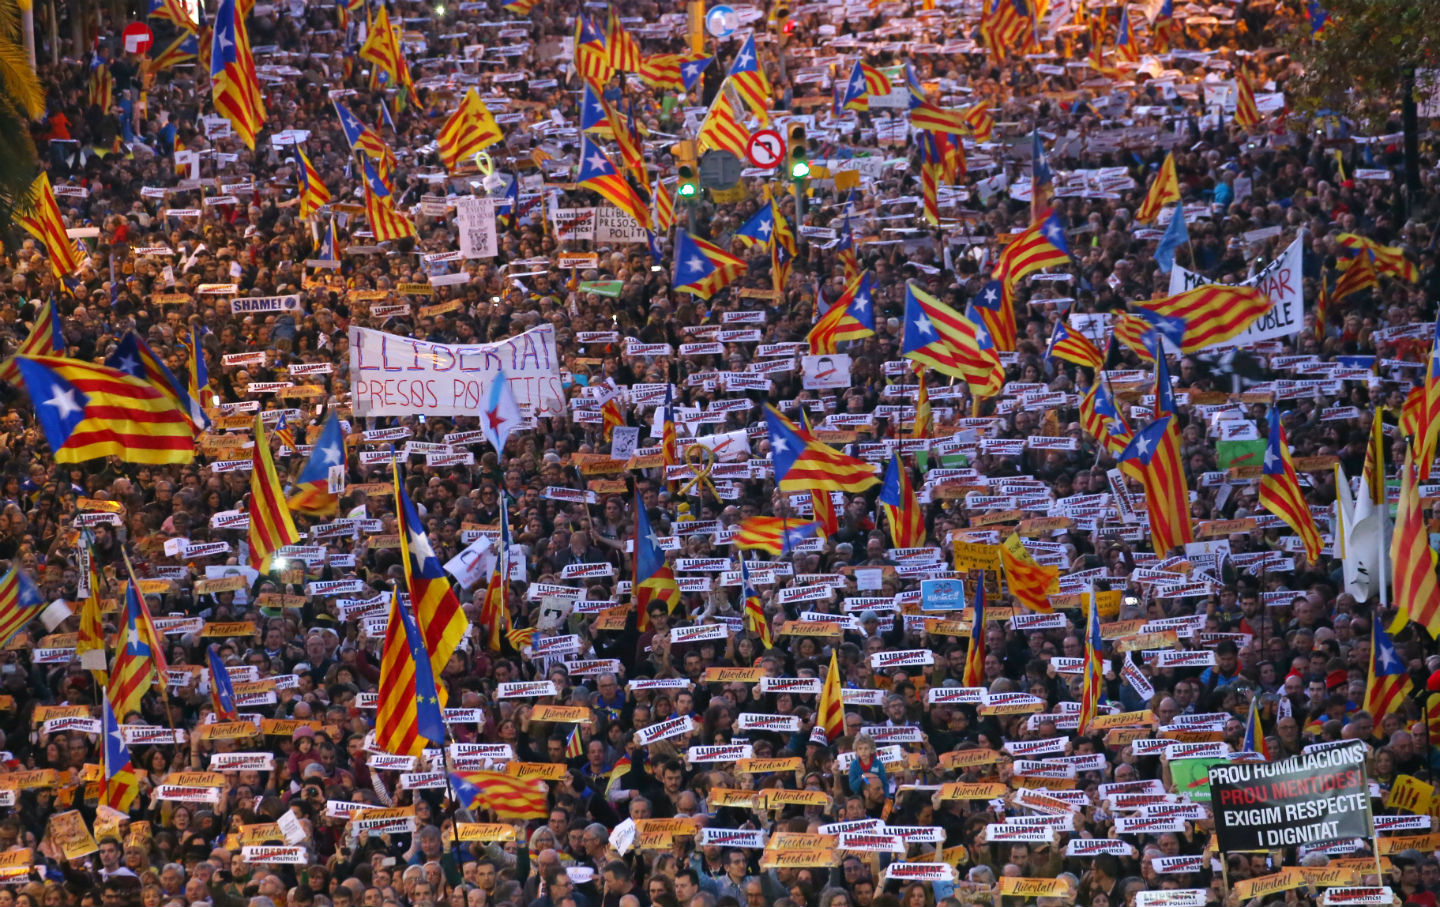 Catalonia-Independence-March-rtr-img.jpg